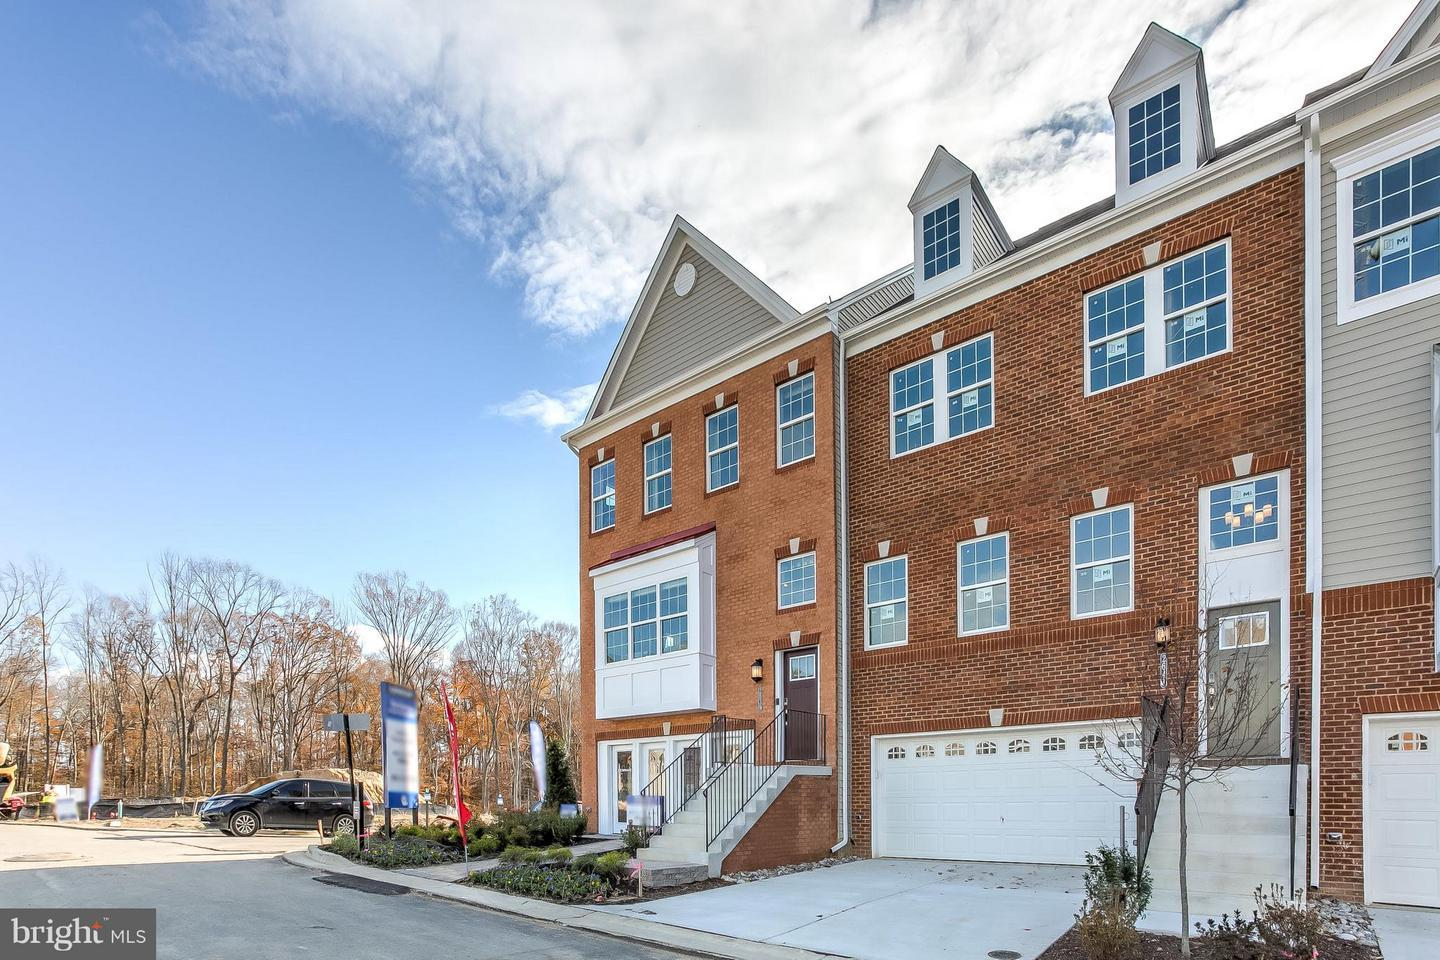 Homes for Sale in Gambrills MD — Gambrills Real Estate — ZipRealty